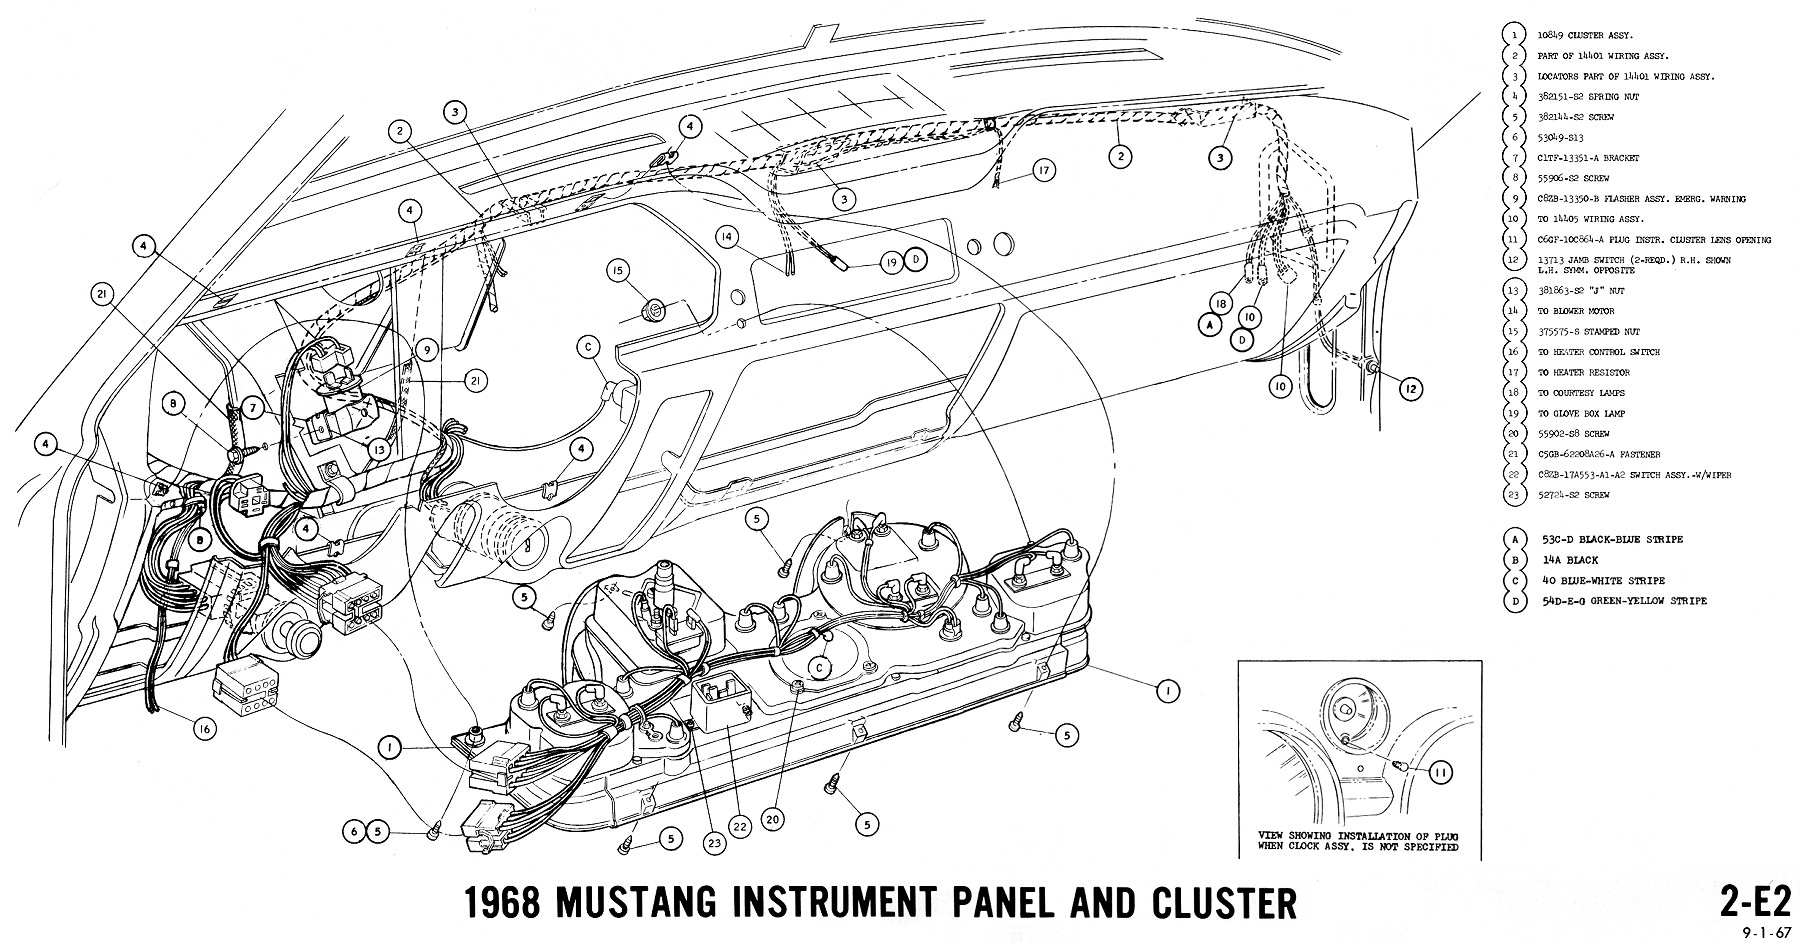 hight resolution of 1968 mustang wiring diagrams and vacuum schematics average joe 1968 plymouth satellite wiring diagram heater wiring heater wiring diagram 1968 ford galaxie